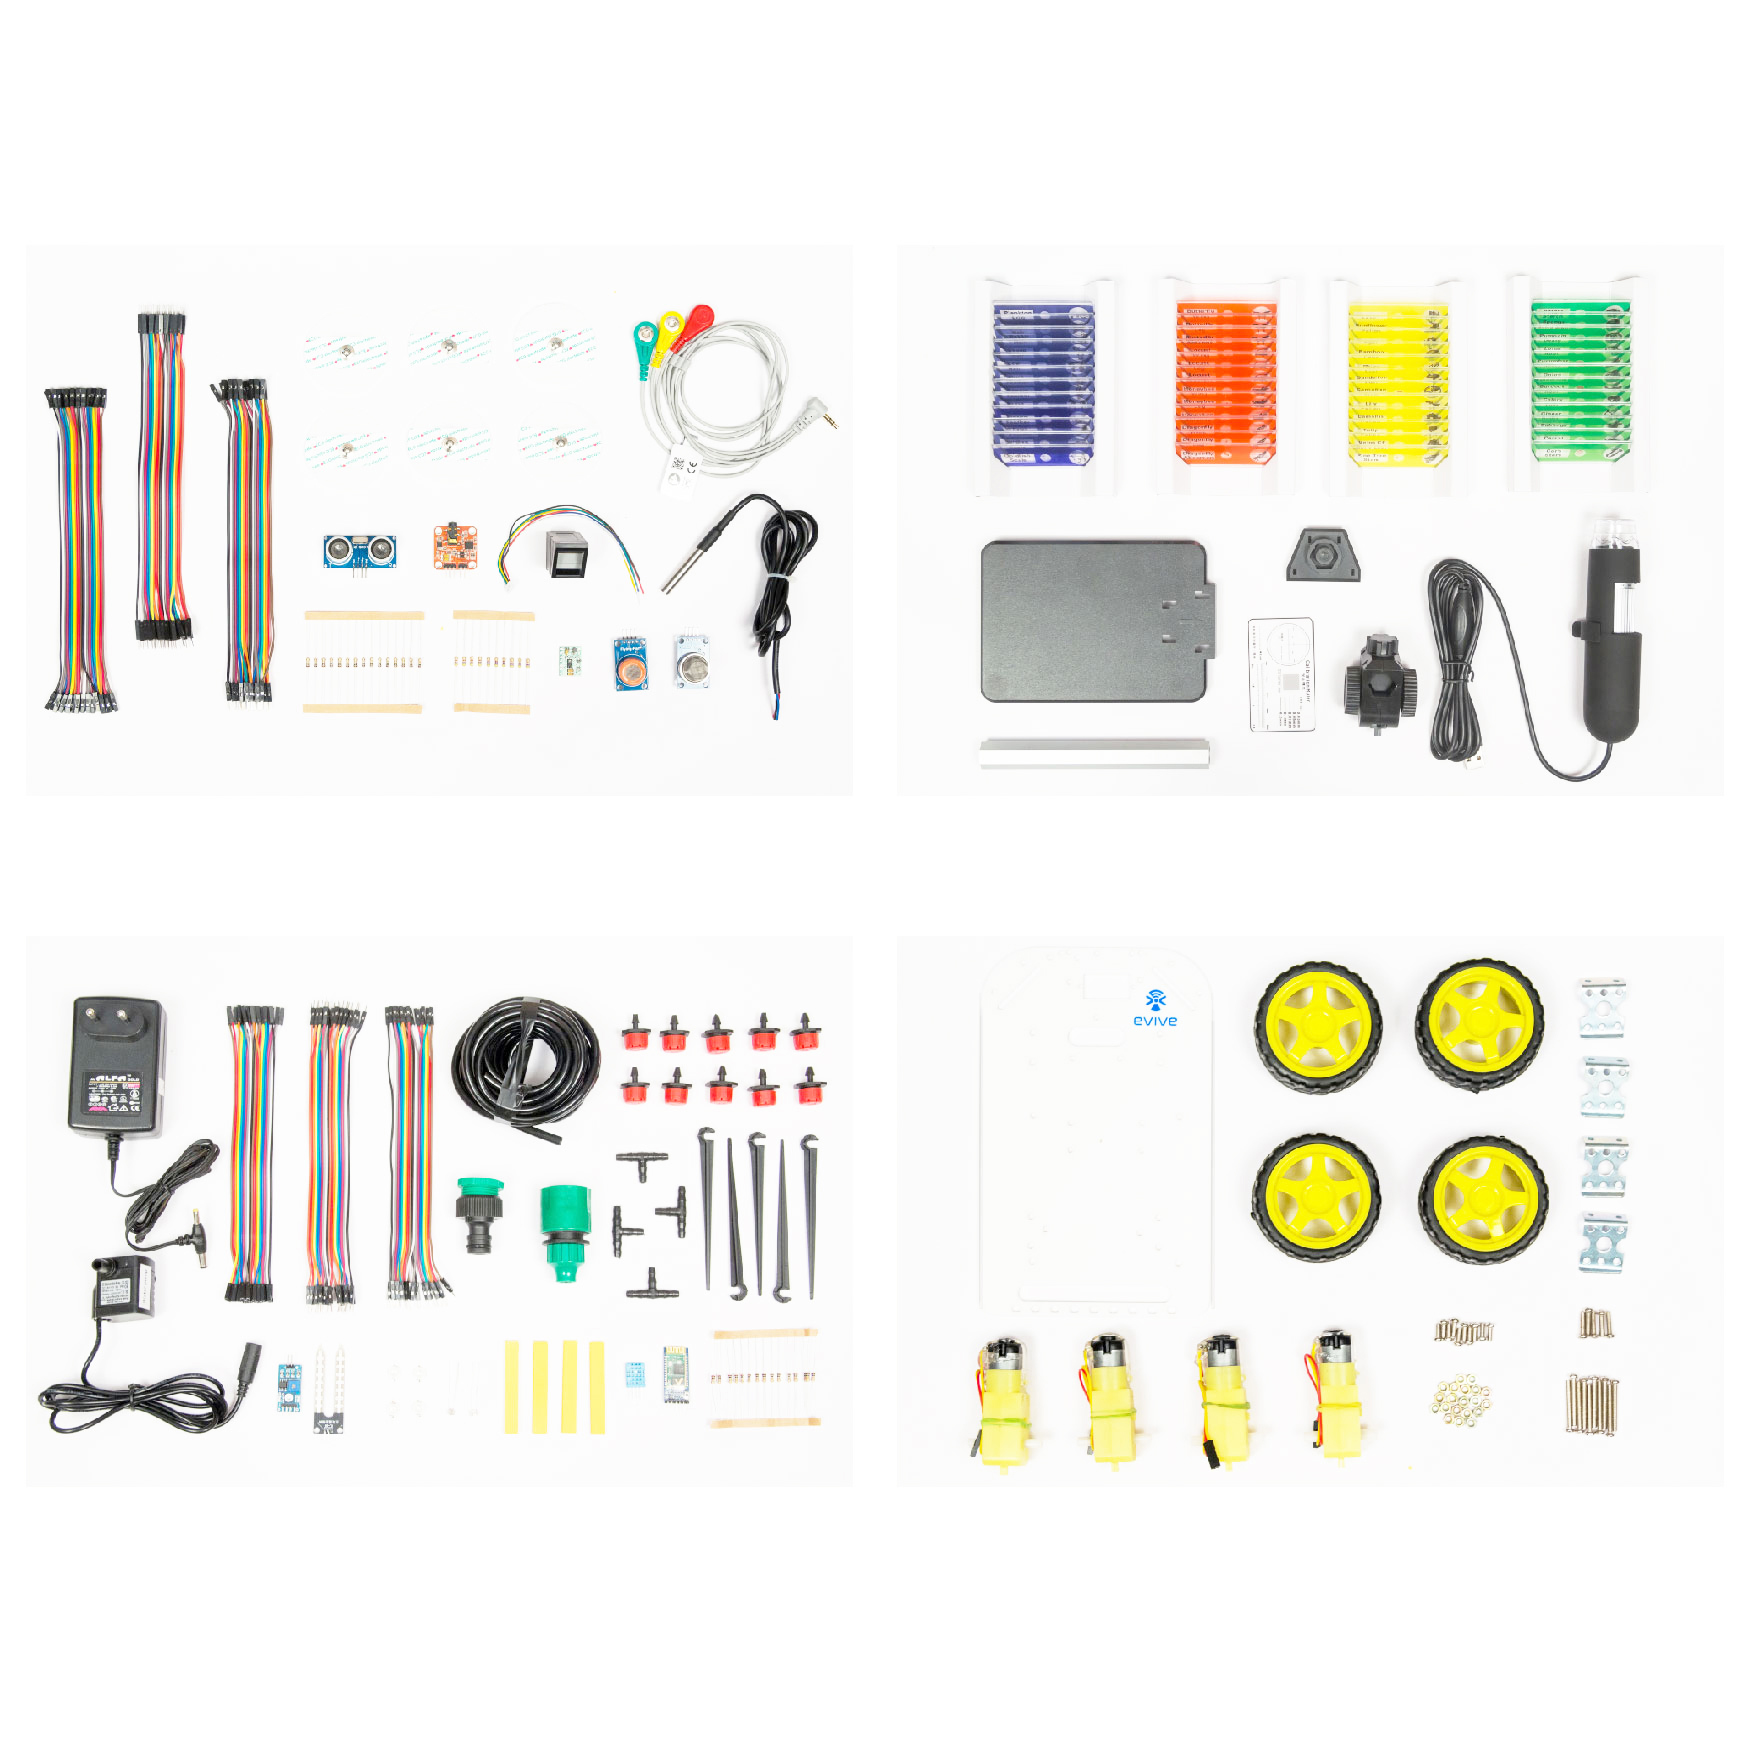 Atal Tinkering Labs (ATL) P4 Component/Equipment List for